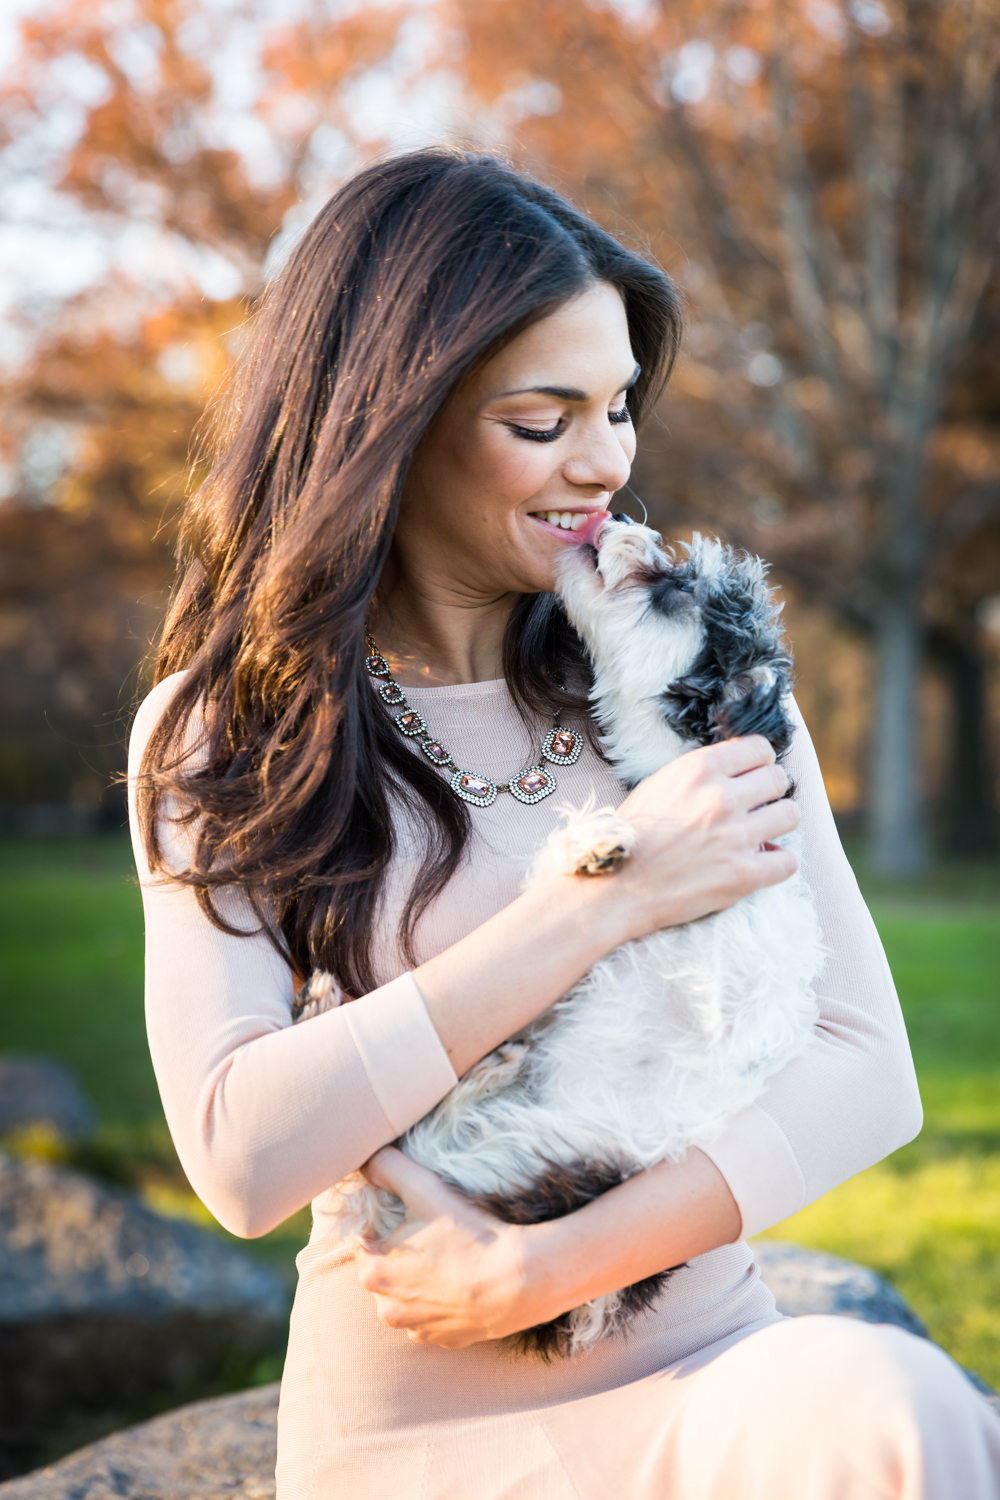 Woman in pink dress holding dog licking her face